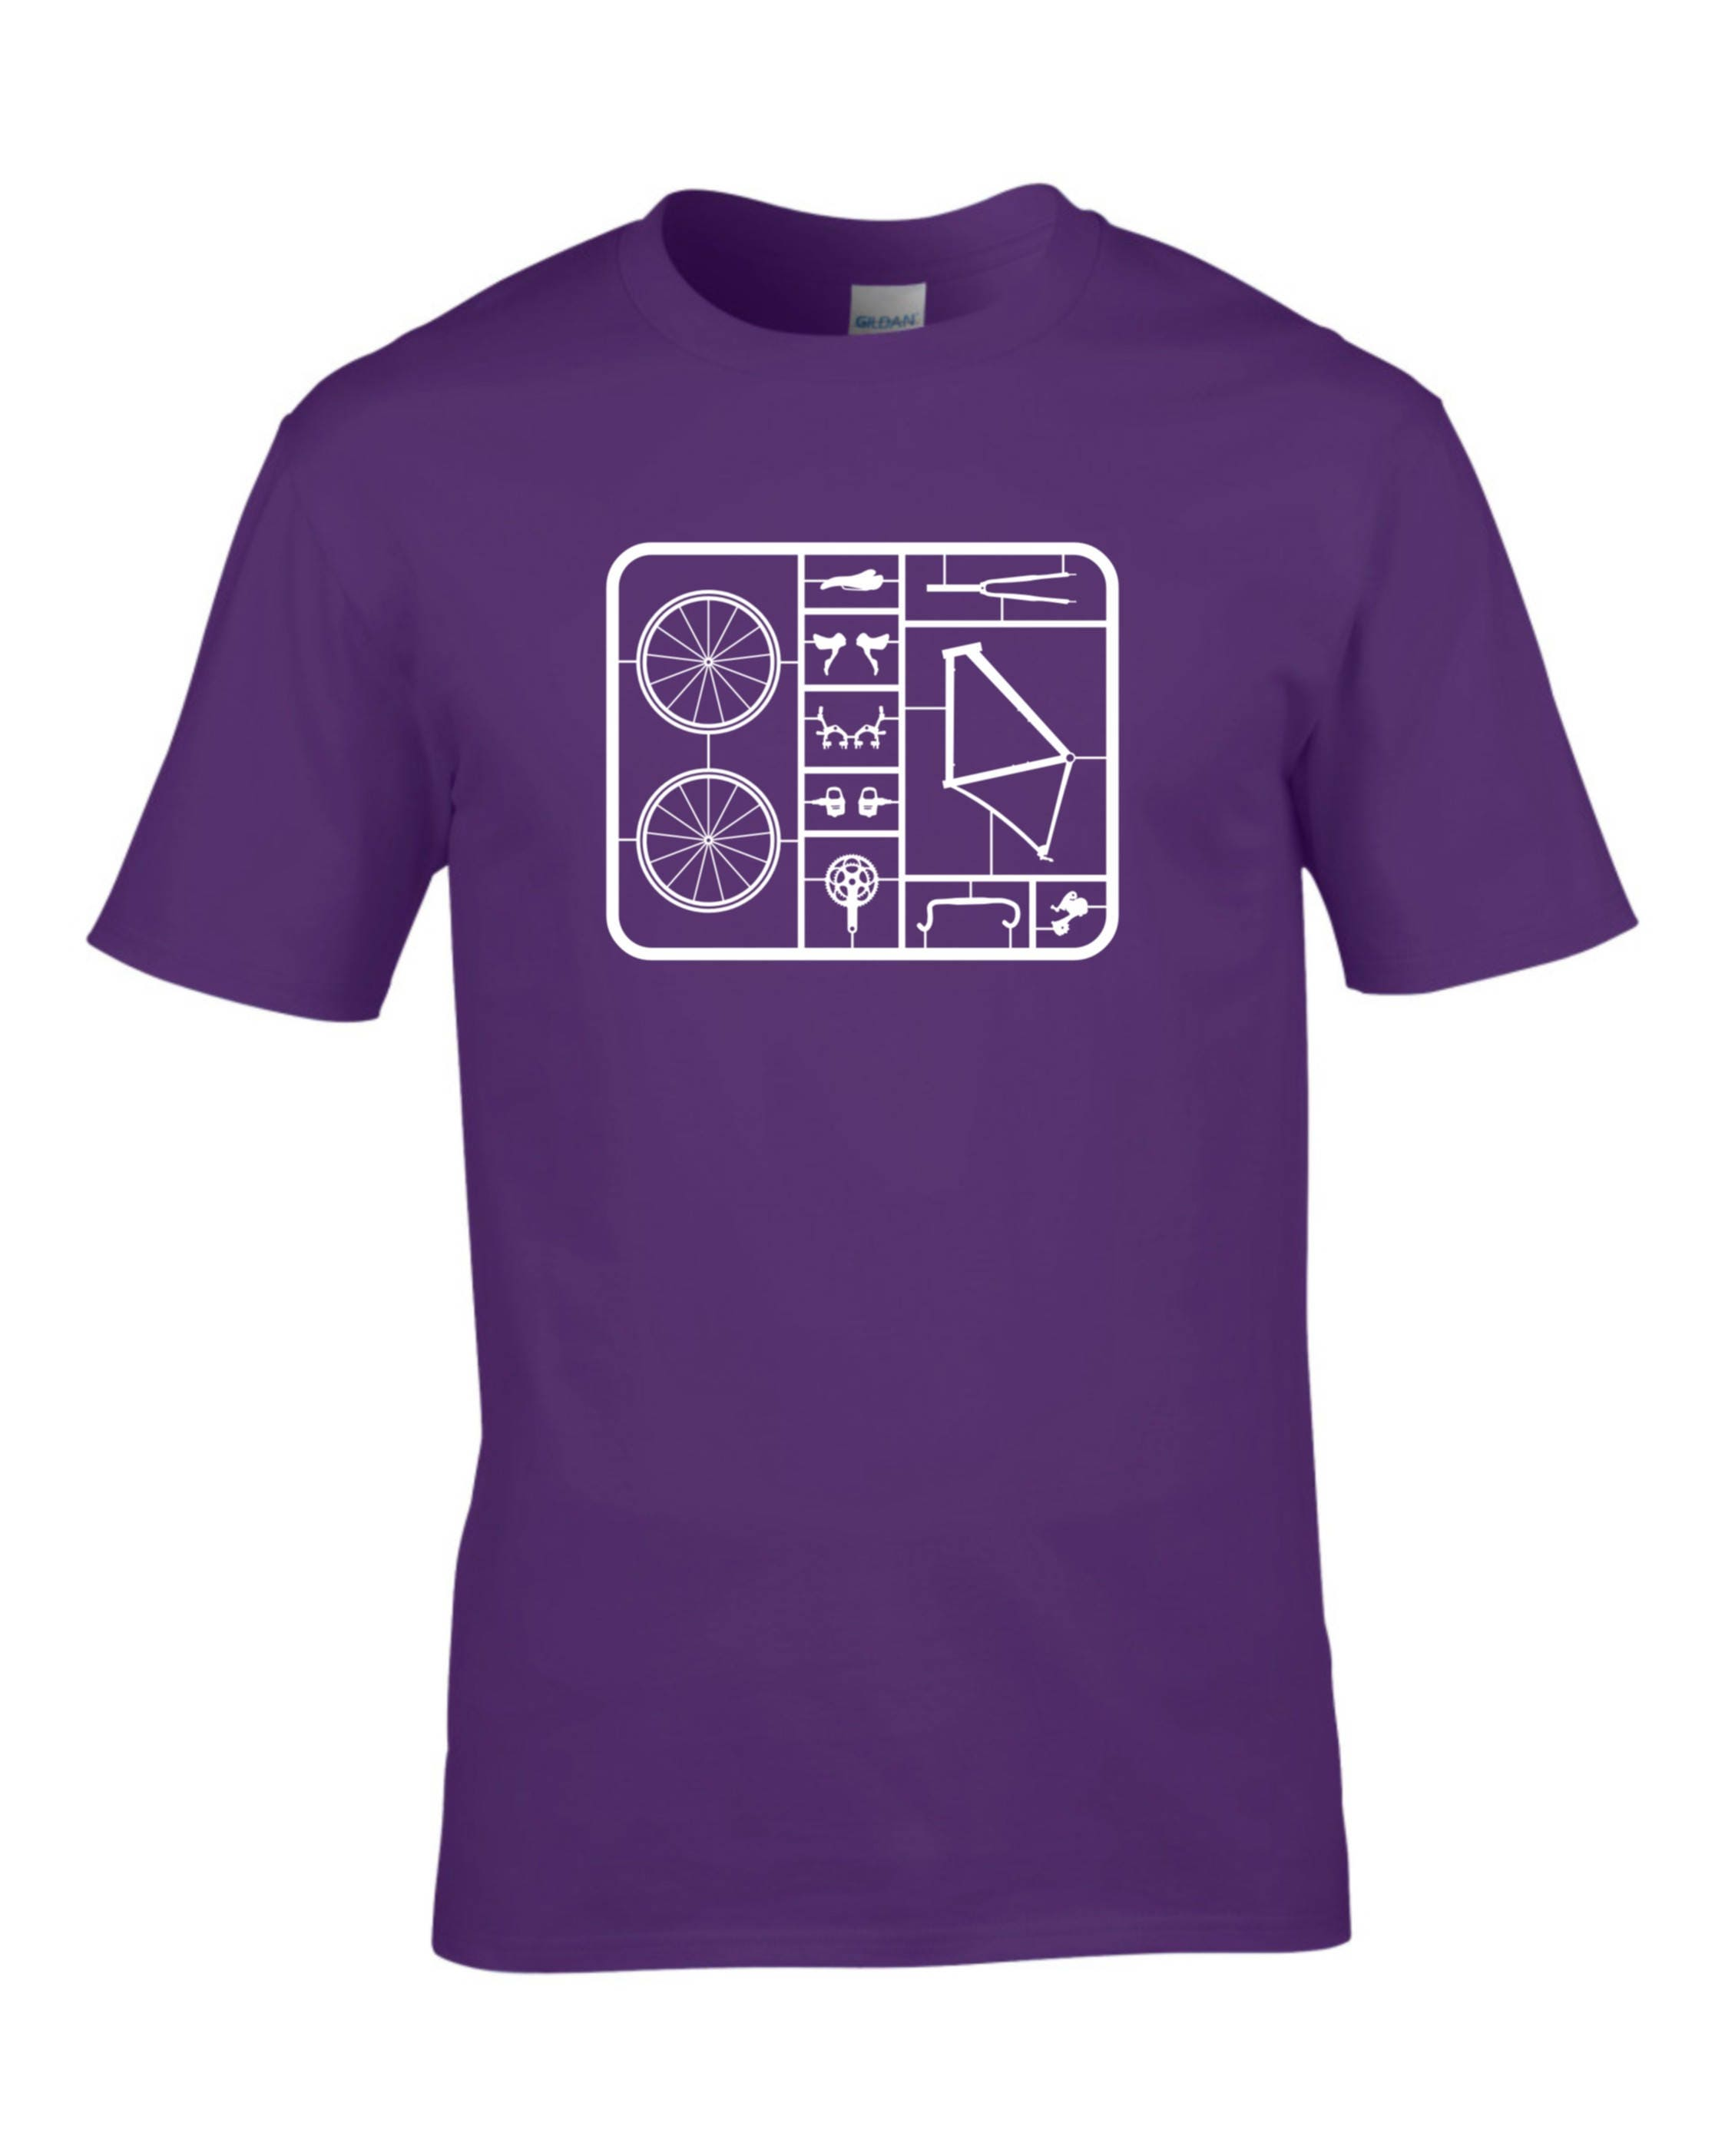 Cycling gifts for him road bike men 39 s mens tshirt t for Bike and cycle shoppe shirt